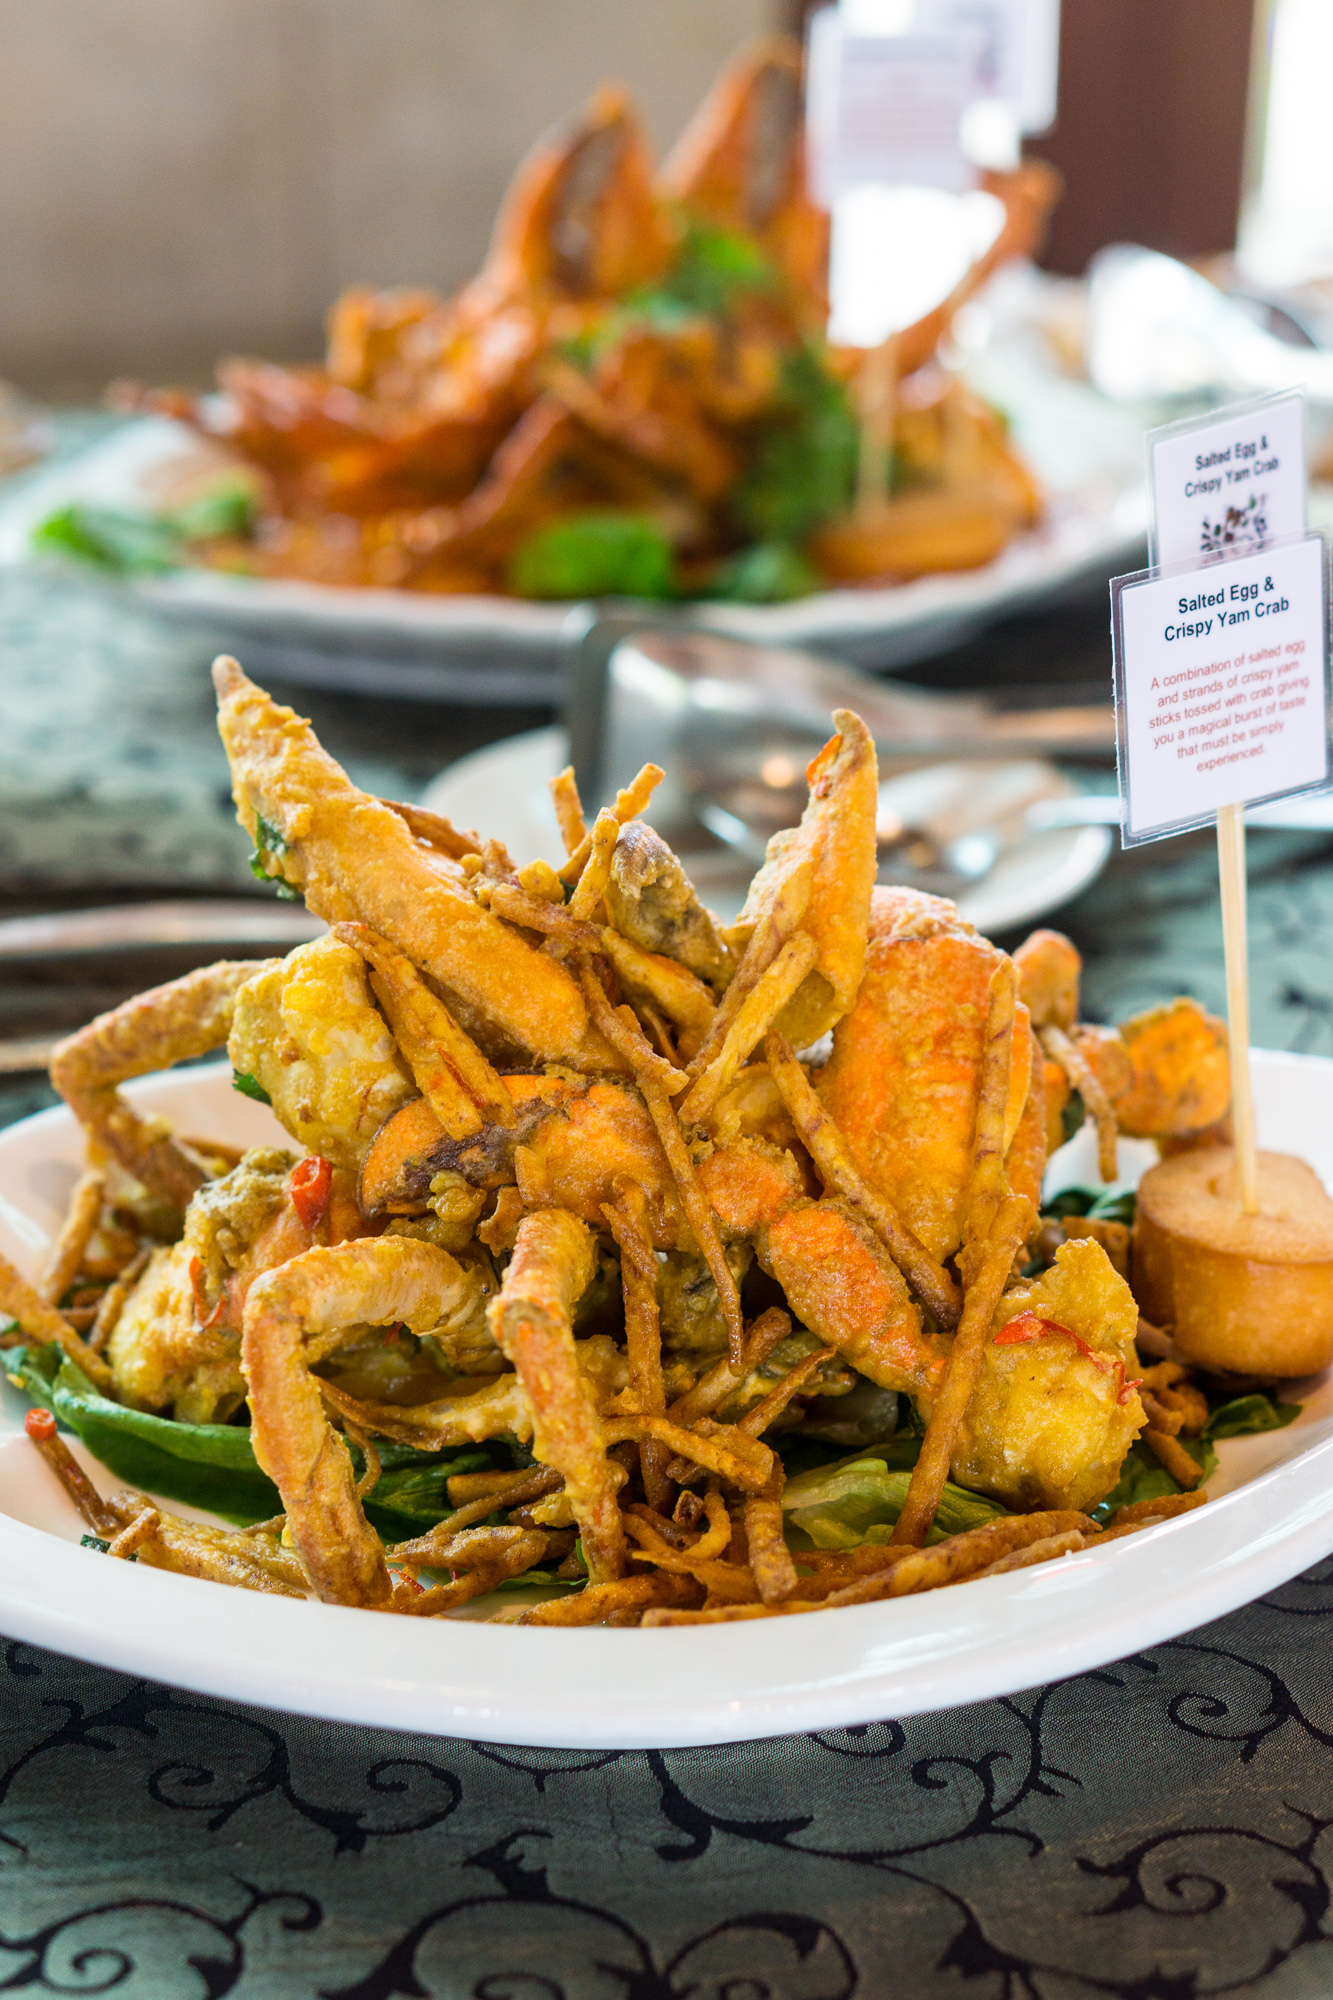 Ah Hoi's Kitchen at Hotel Jen Tanglin Singapore Festival of Crab - Salted Egg and Crispy Yam Crab 1